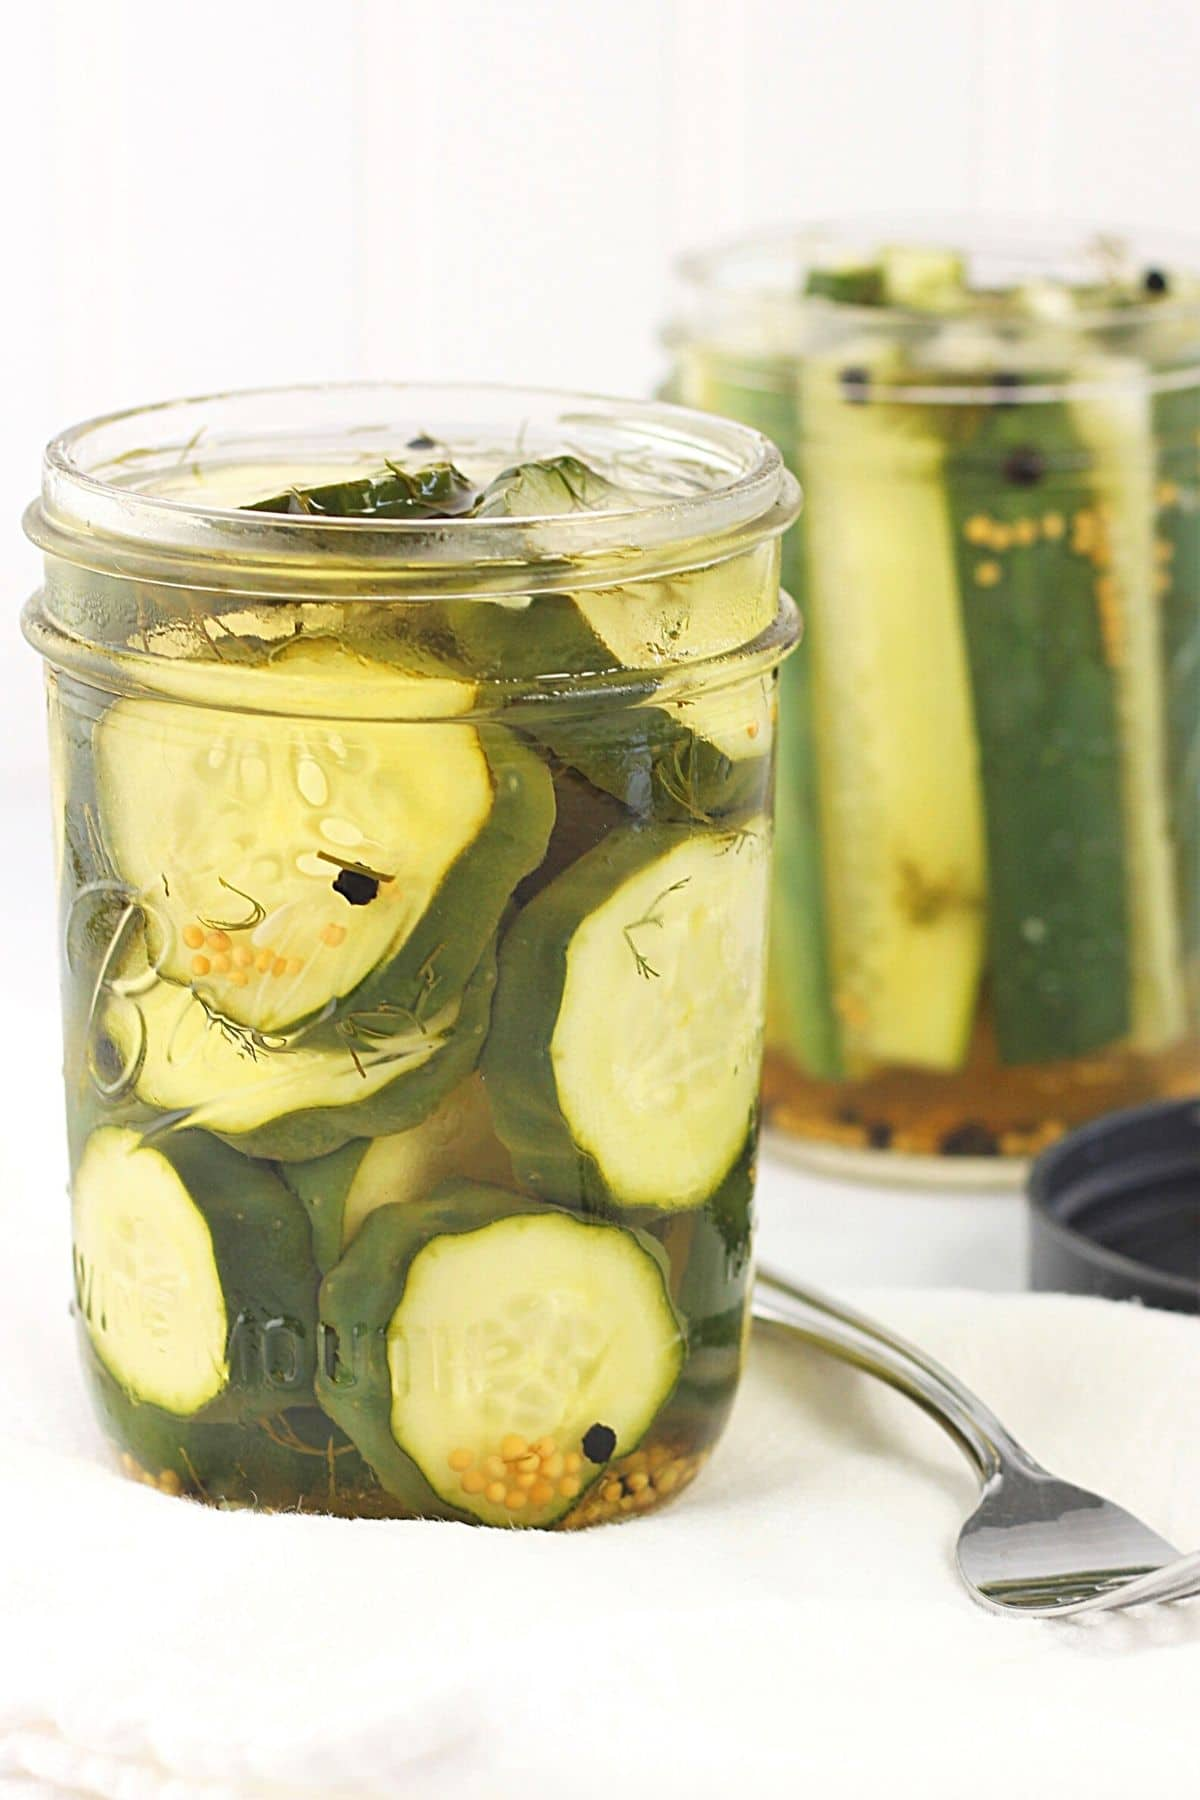 2 jars of garlic and dill 24-hour refrigerator pickles with a jar lid and fork on the side